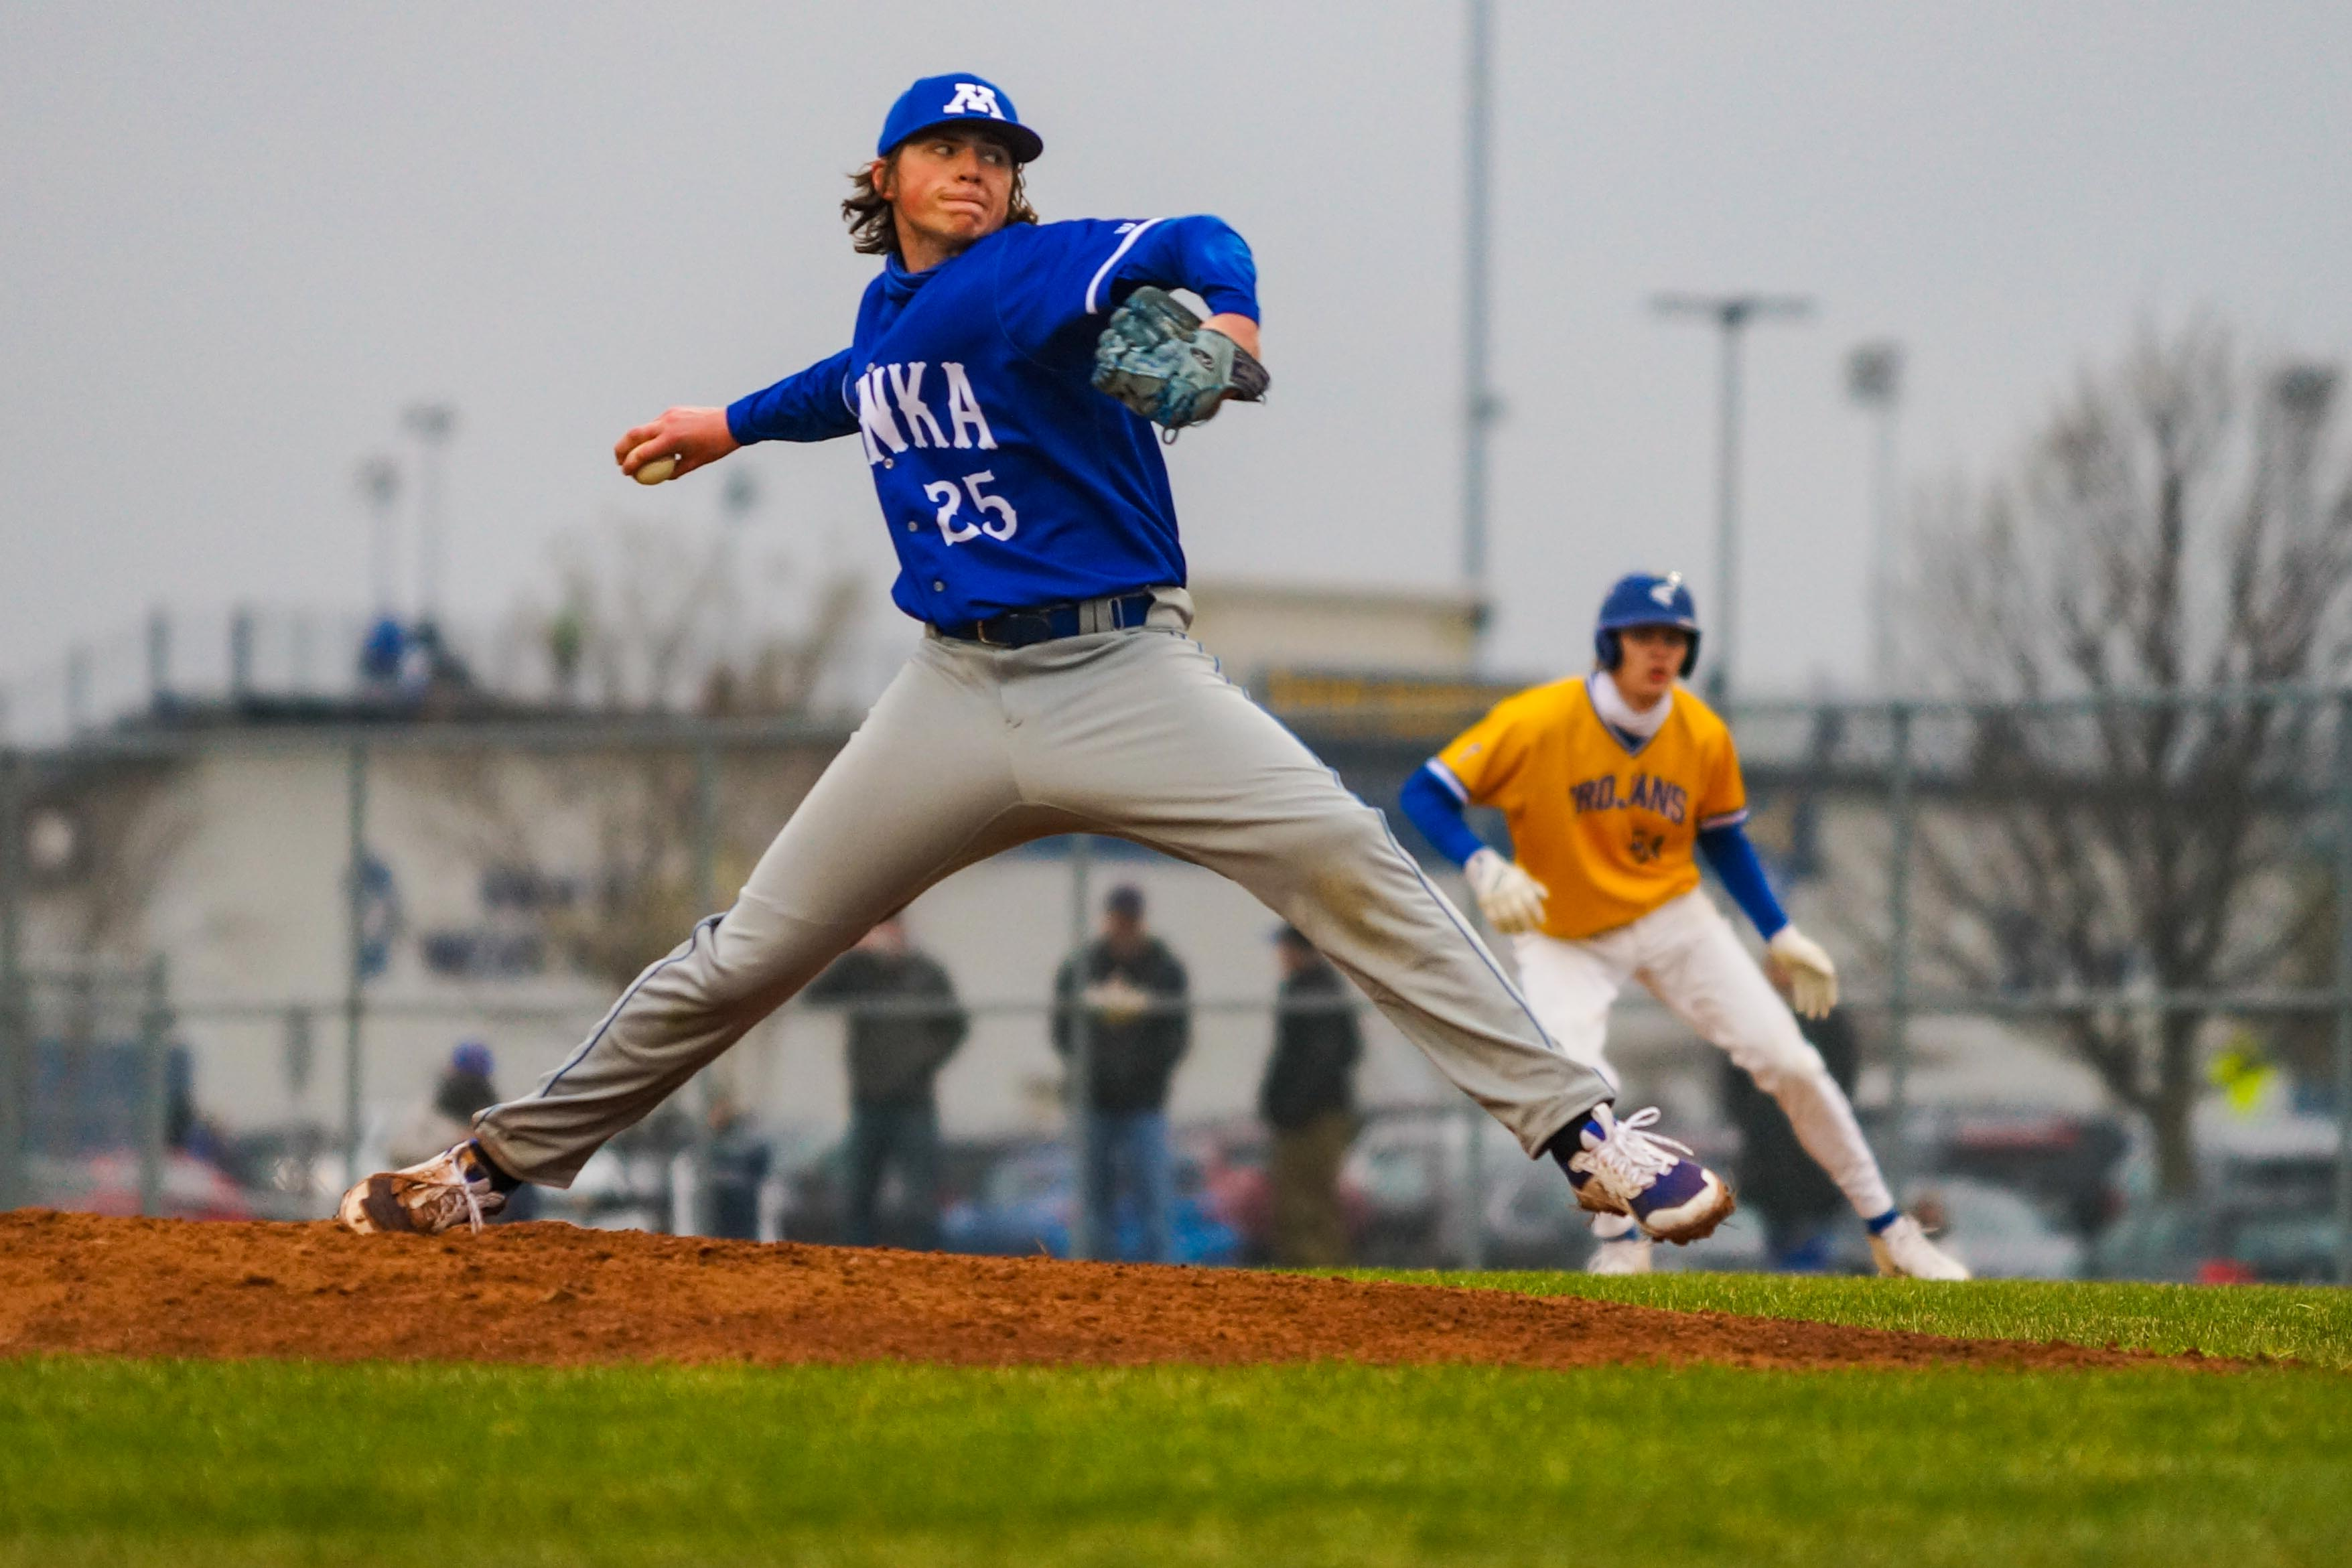 Minnetonka pitcher Fritz Meyer faced an undefeated Wayzata team Friday, walking the first four batters he faced before settling in after a three-run first inning. Photo by Korey McDermott, SportsEngine